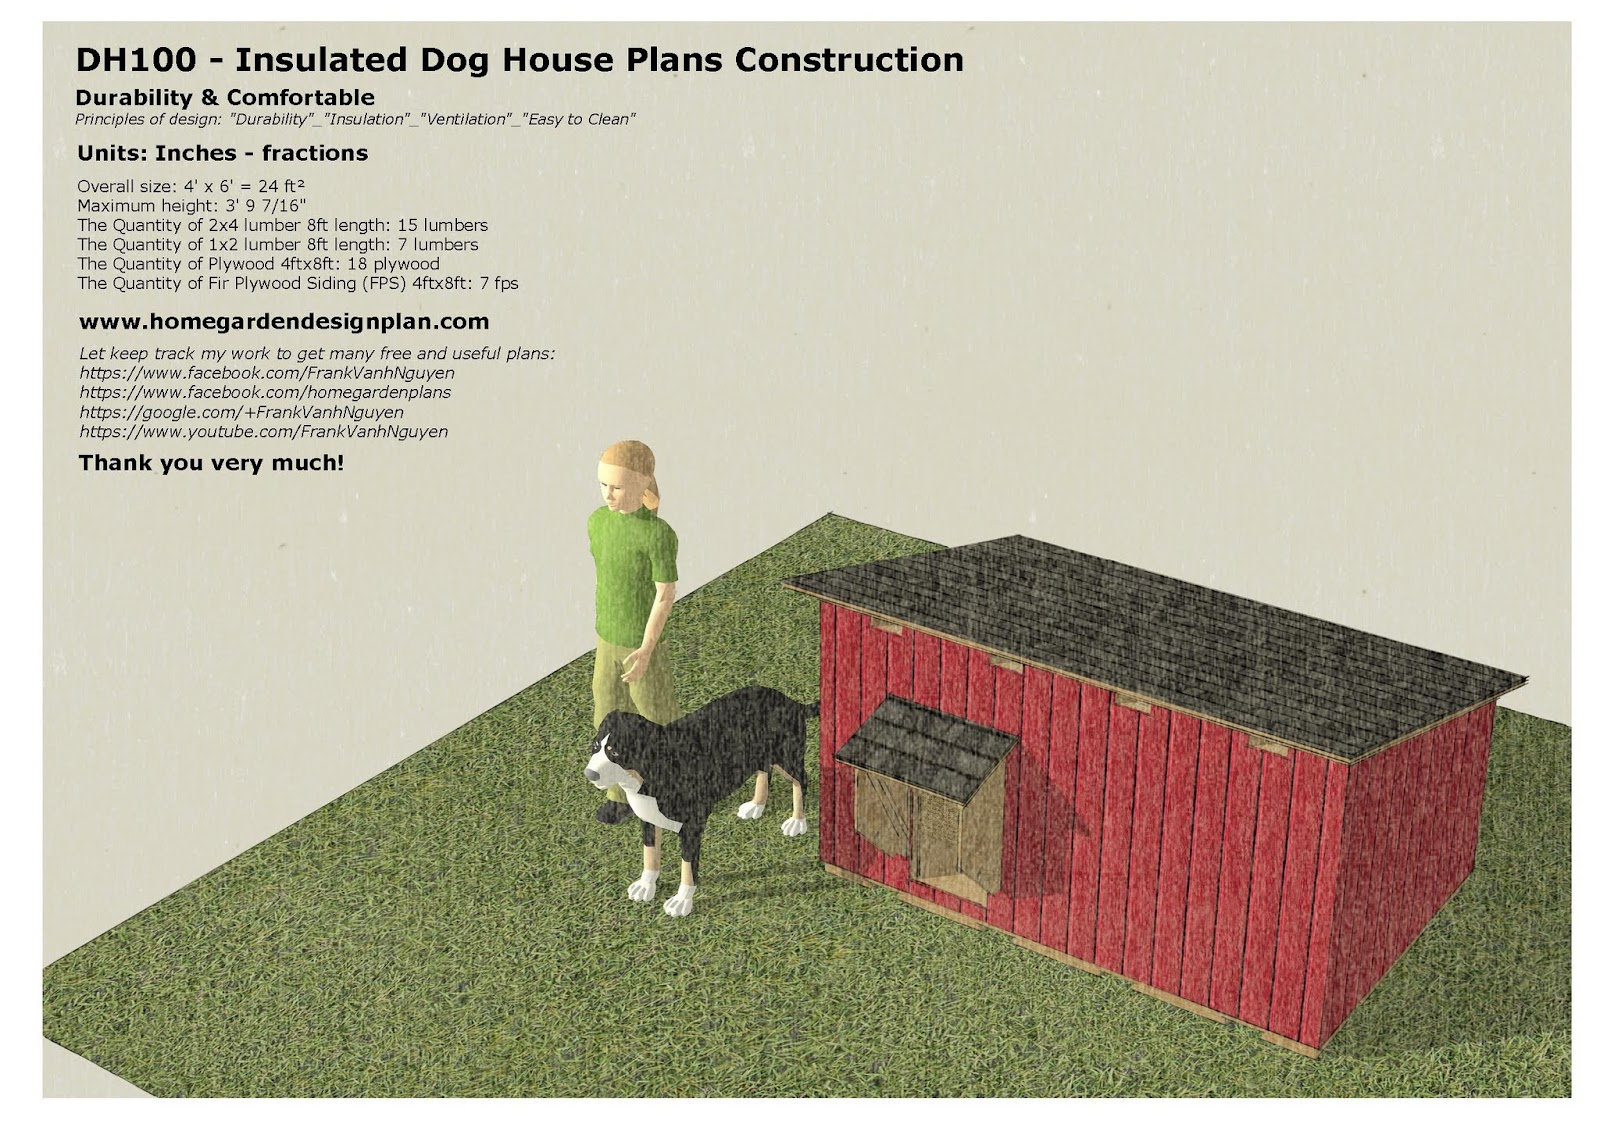 100 insulated dog house building plans dh300 insulated dog